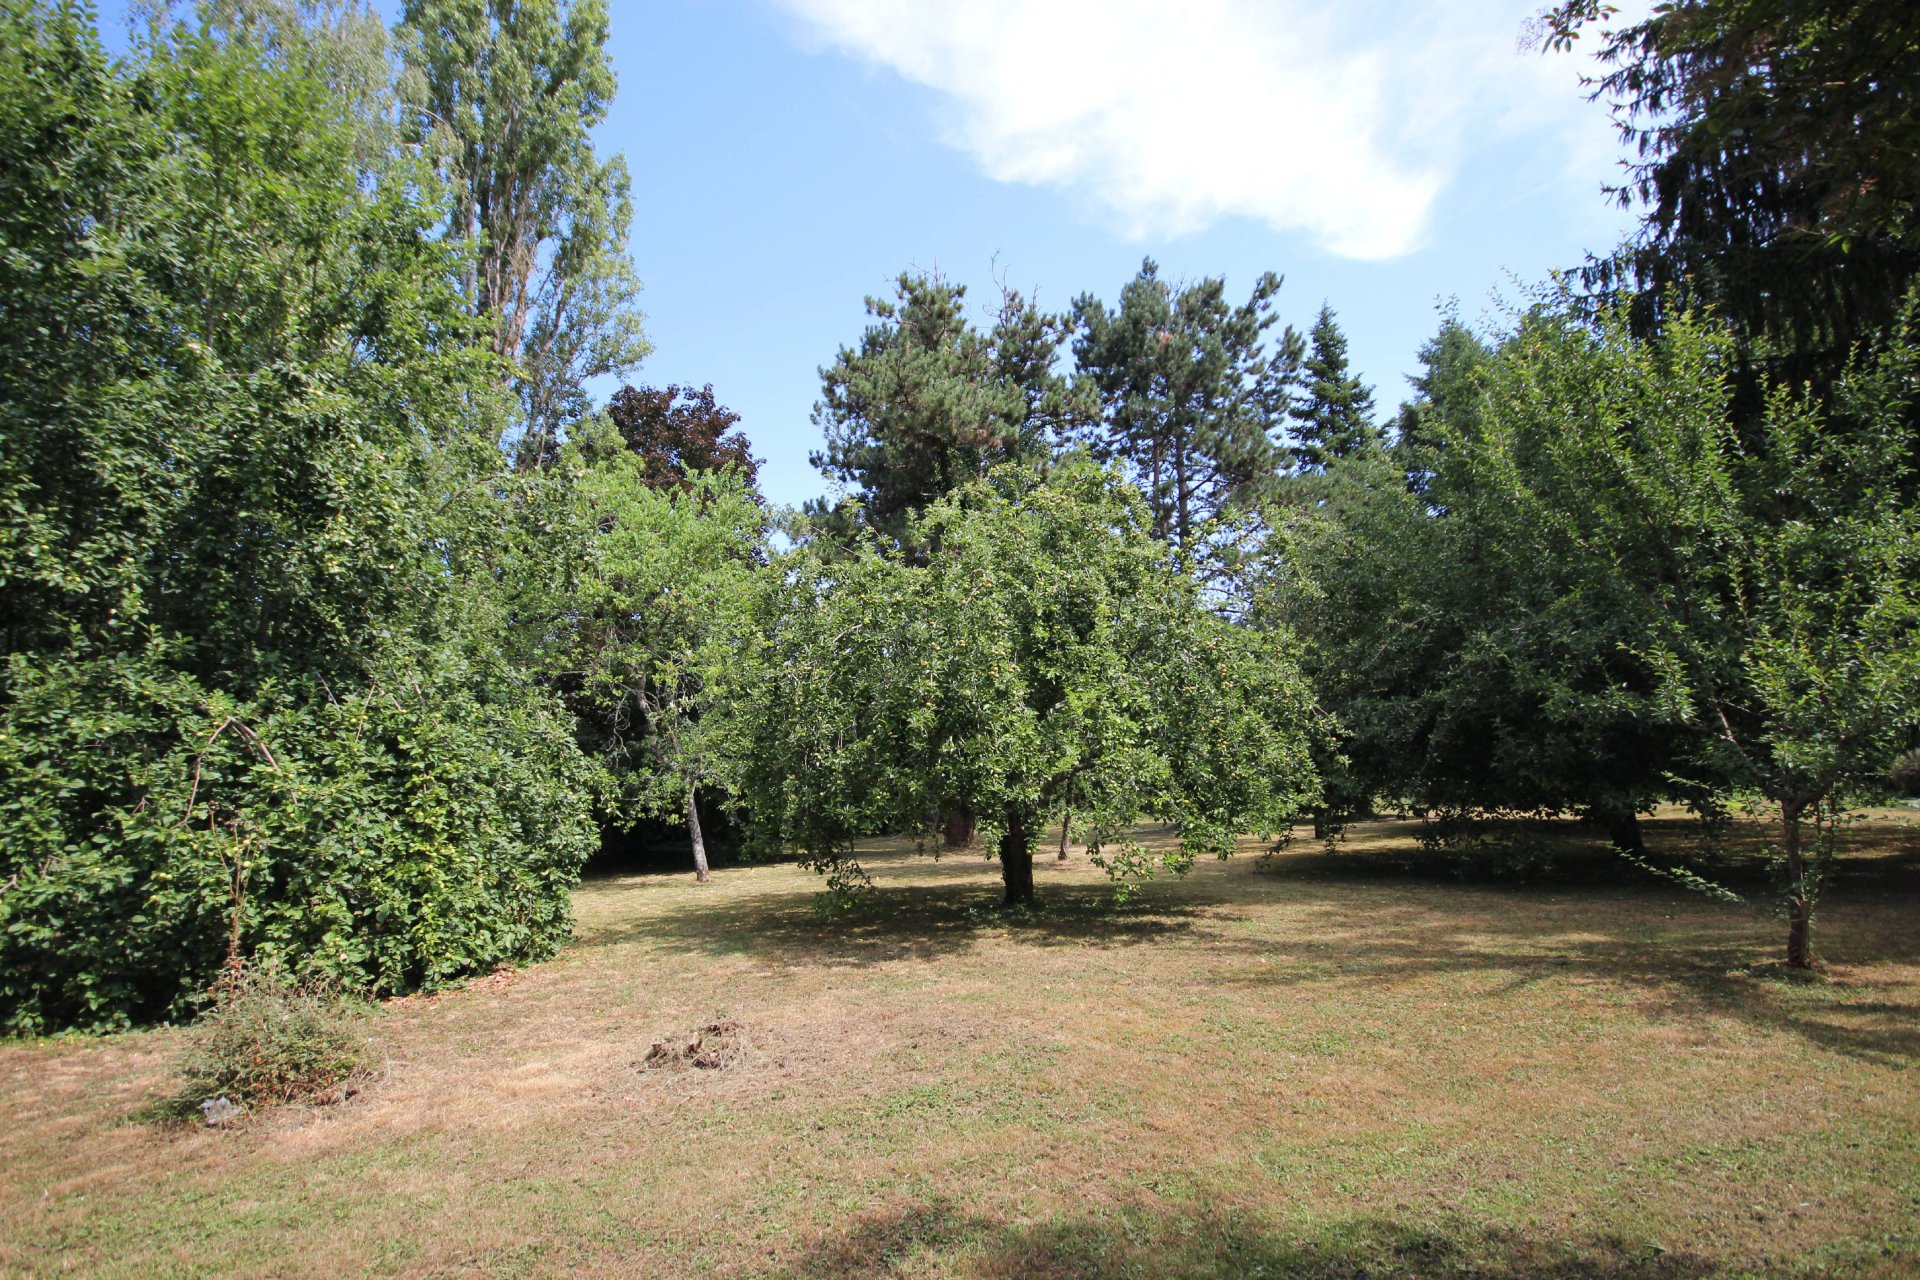 Spacious family home set in mature gardens walking distance to bastide town